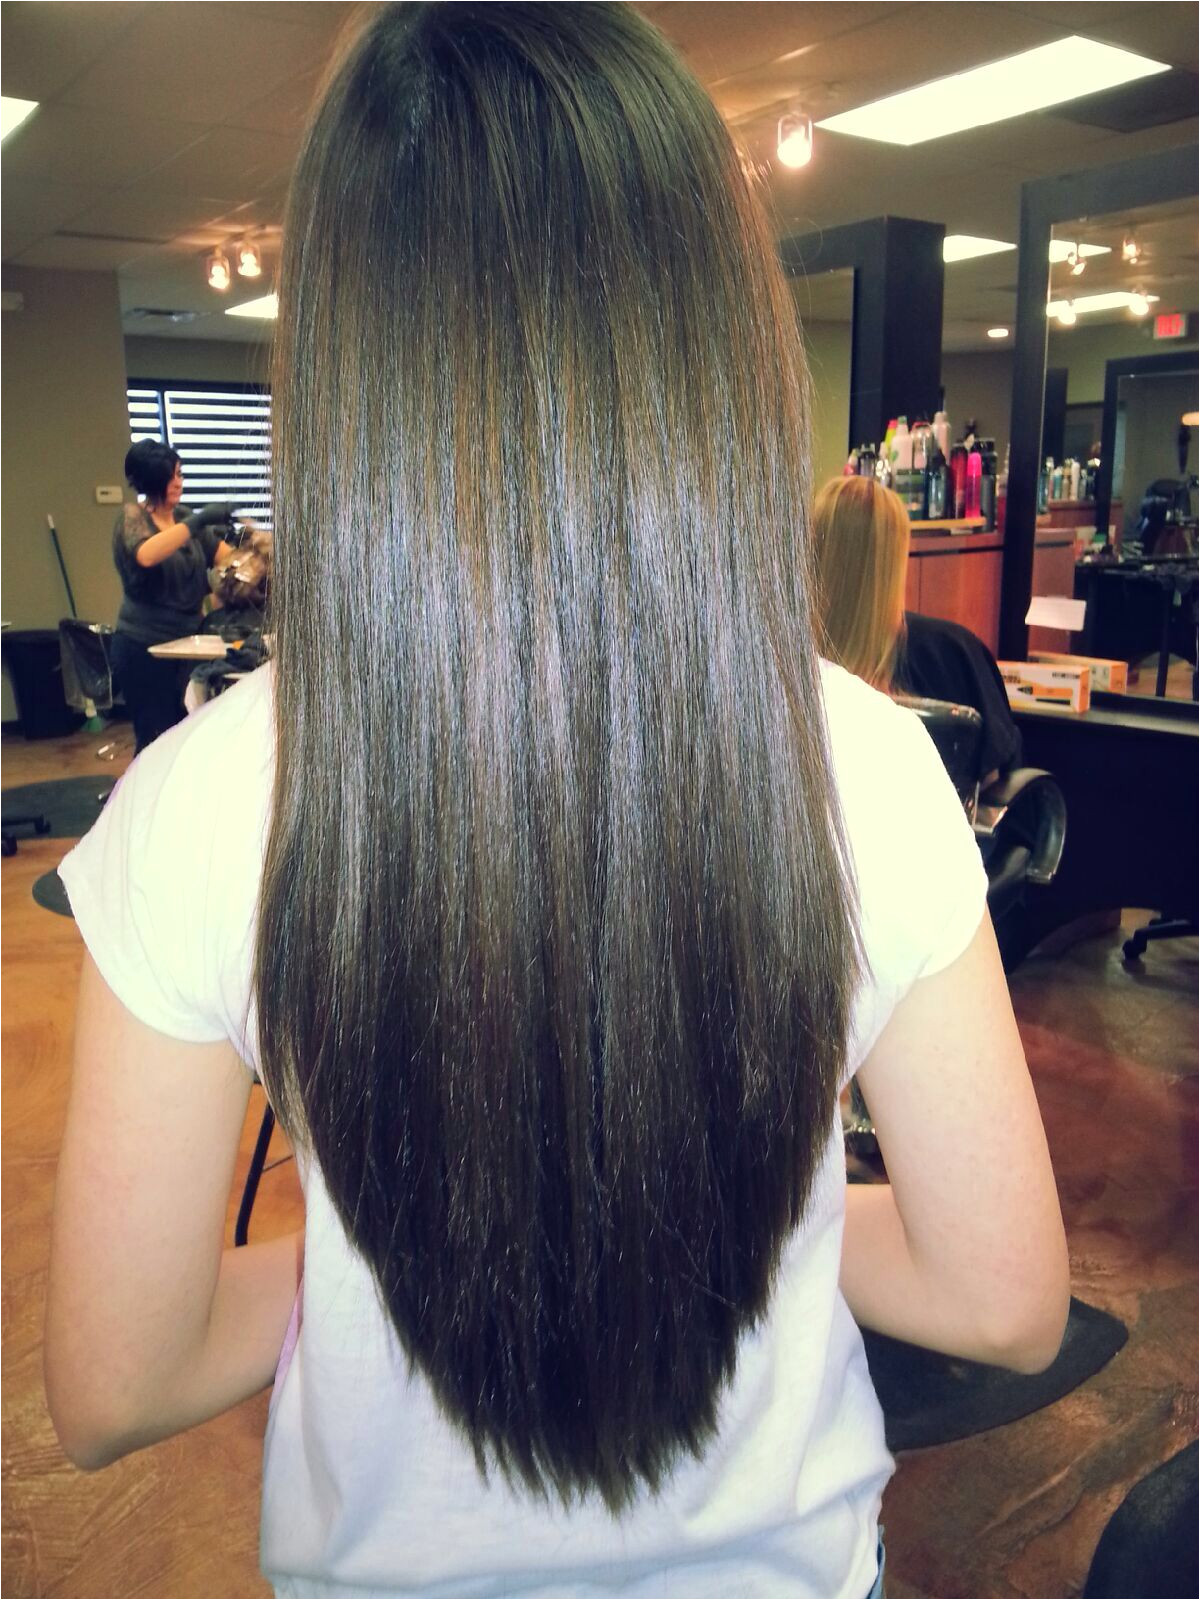 Long V haircut but with a few layers